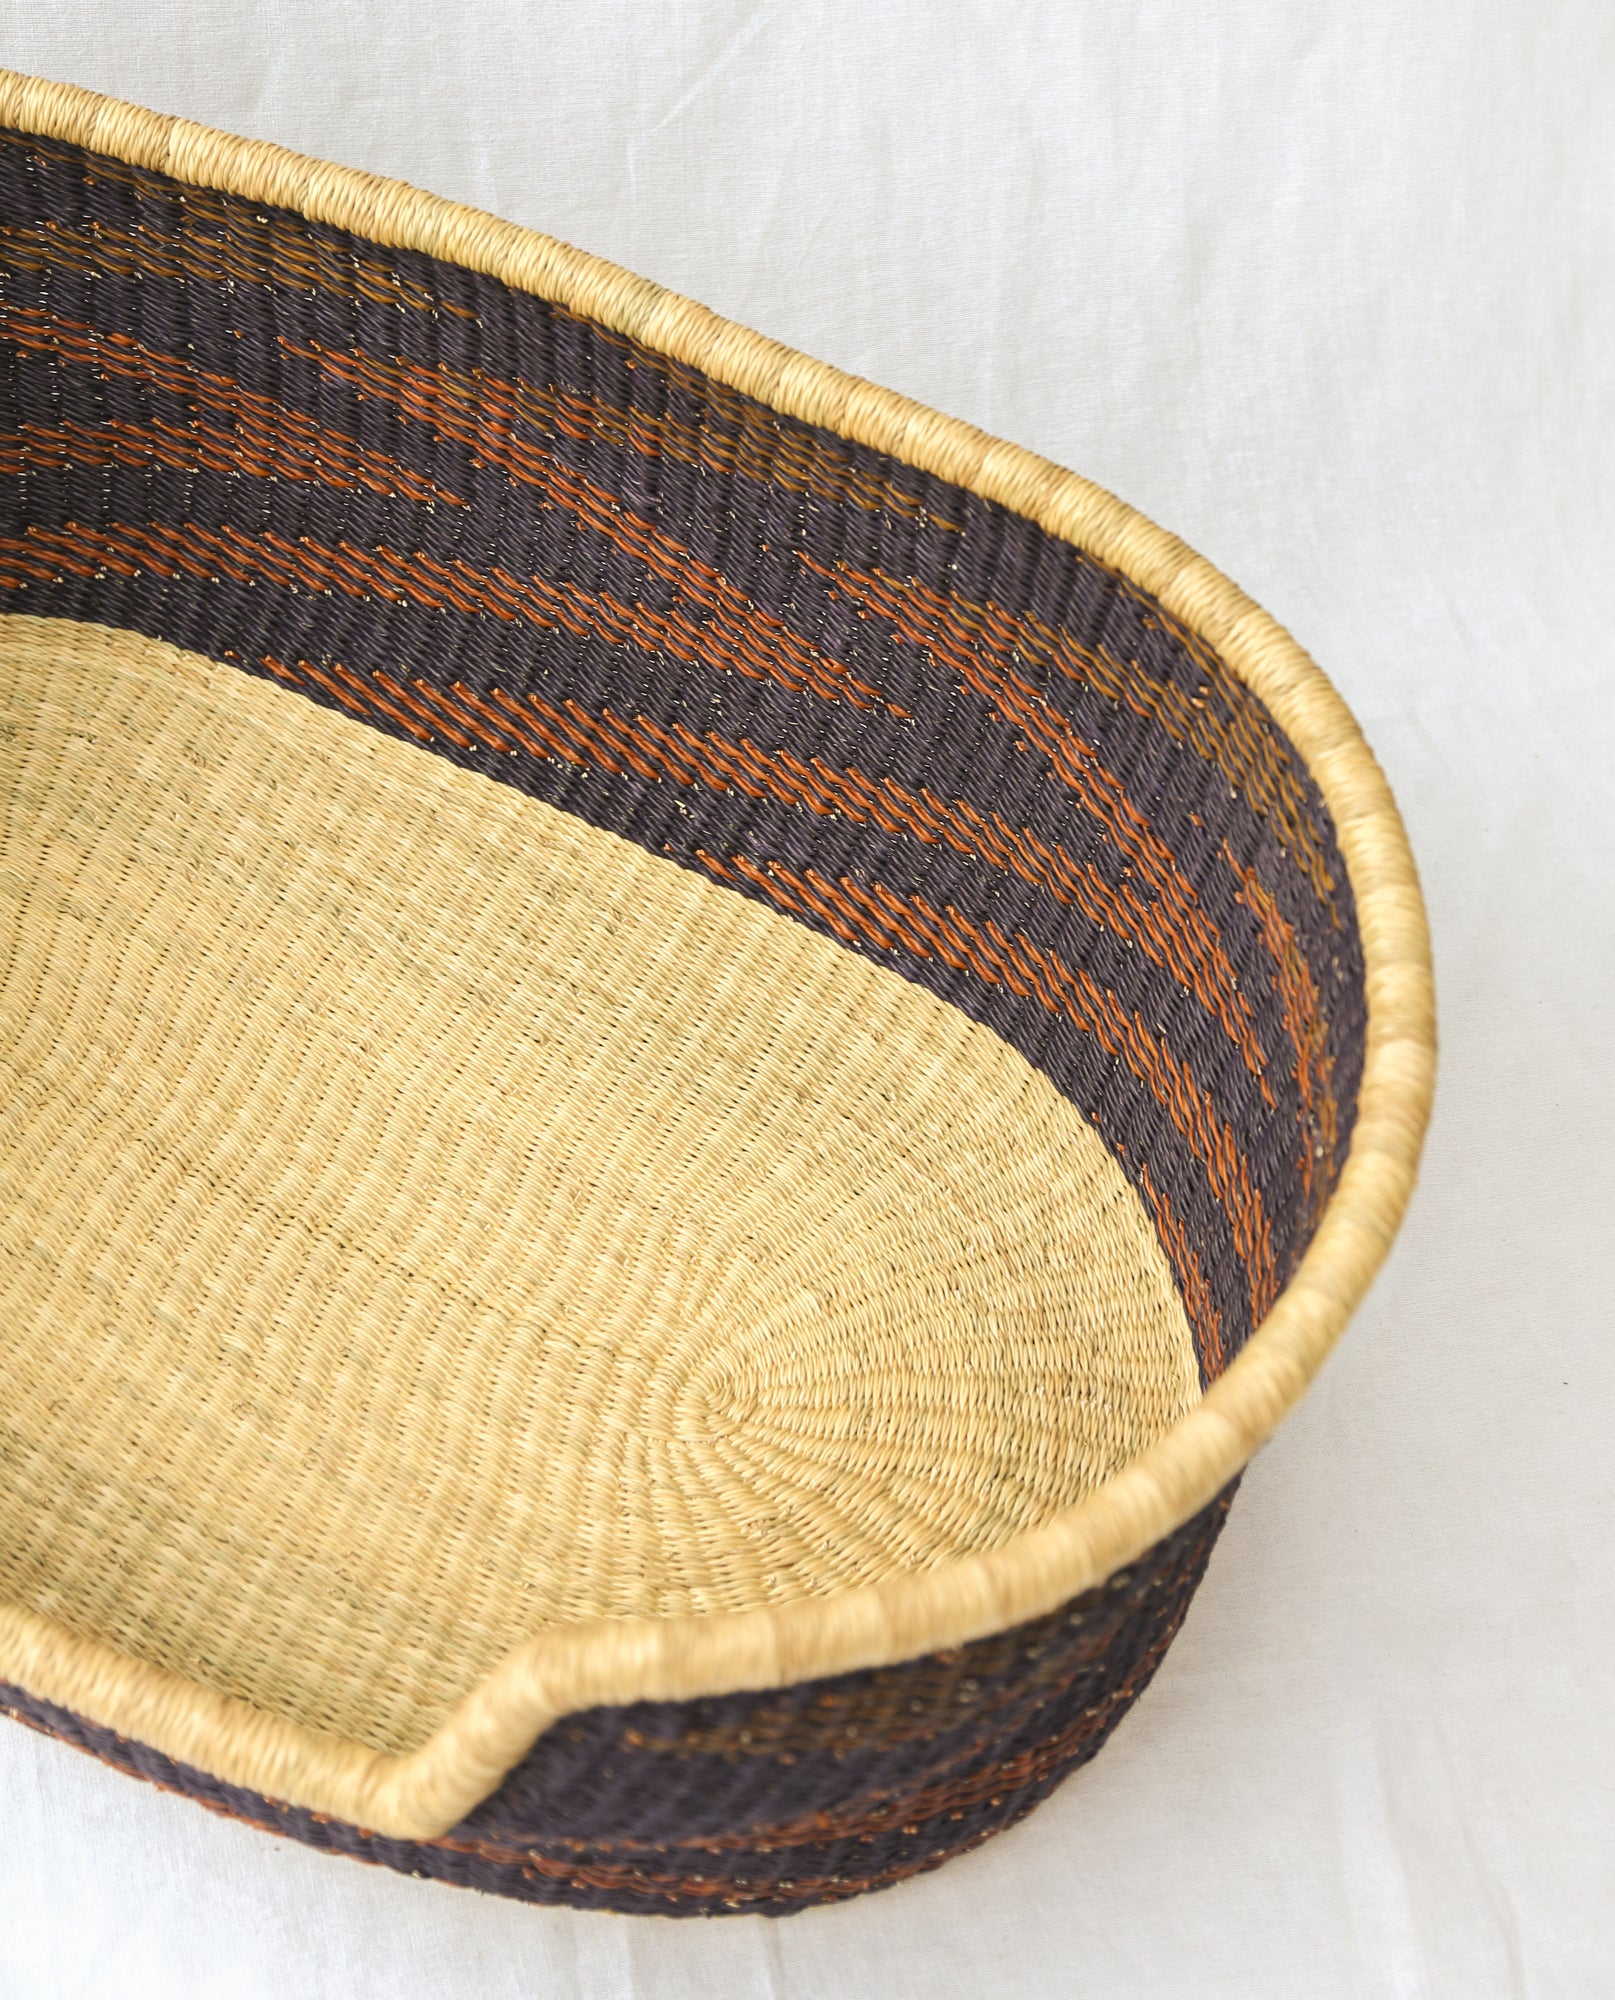 TANO Handwoven Dog Basket